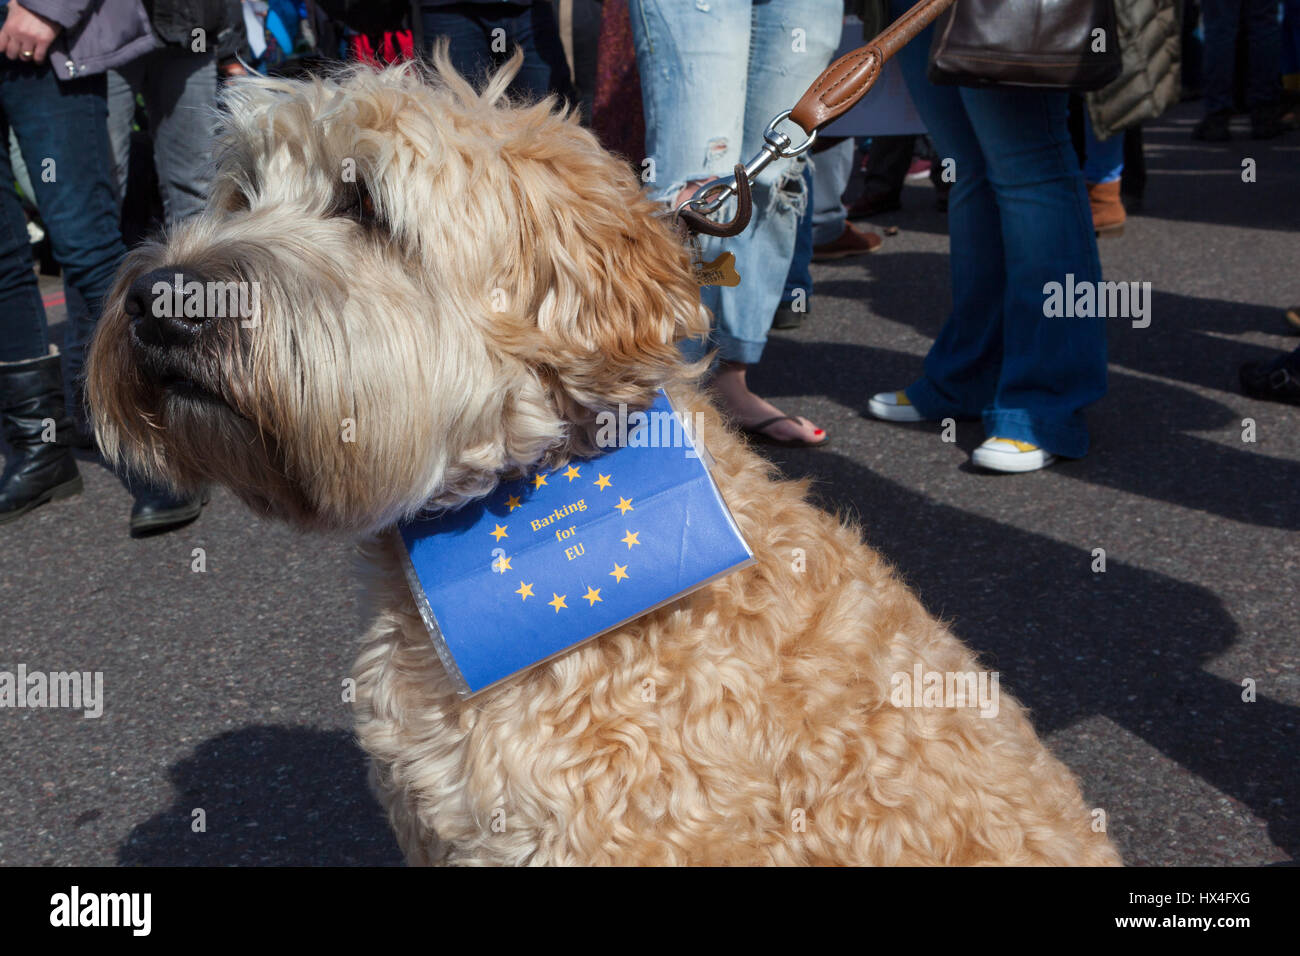 London UK 25th March, 2017. A dog with a European flag tied to his coller joins in at the Unite for Europe March - Stock Image